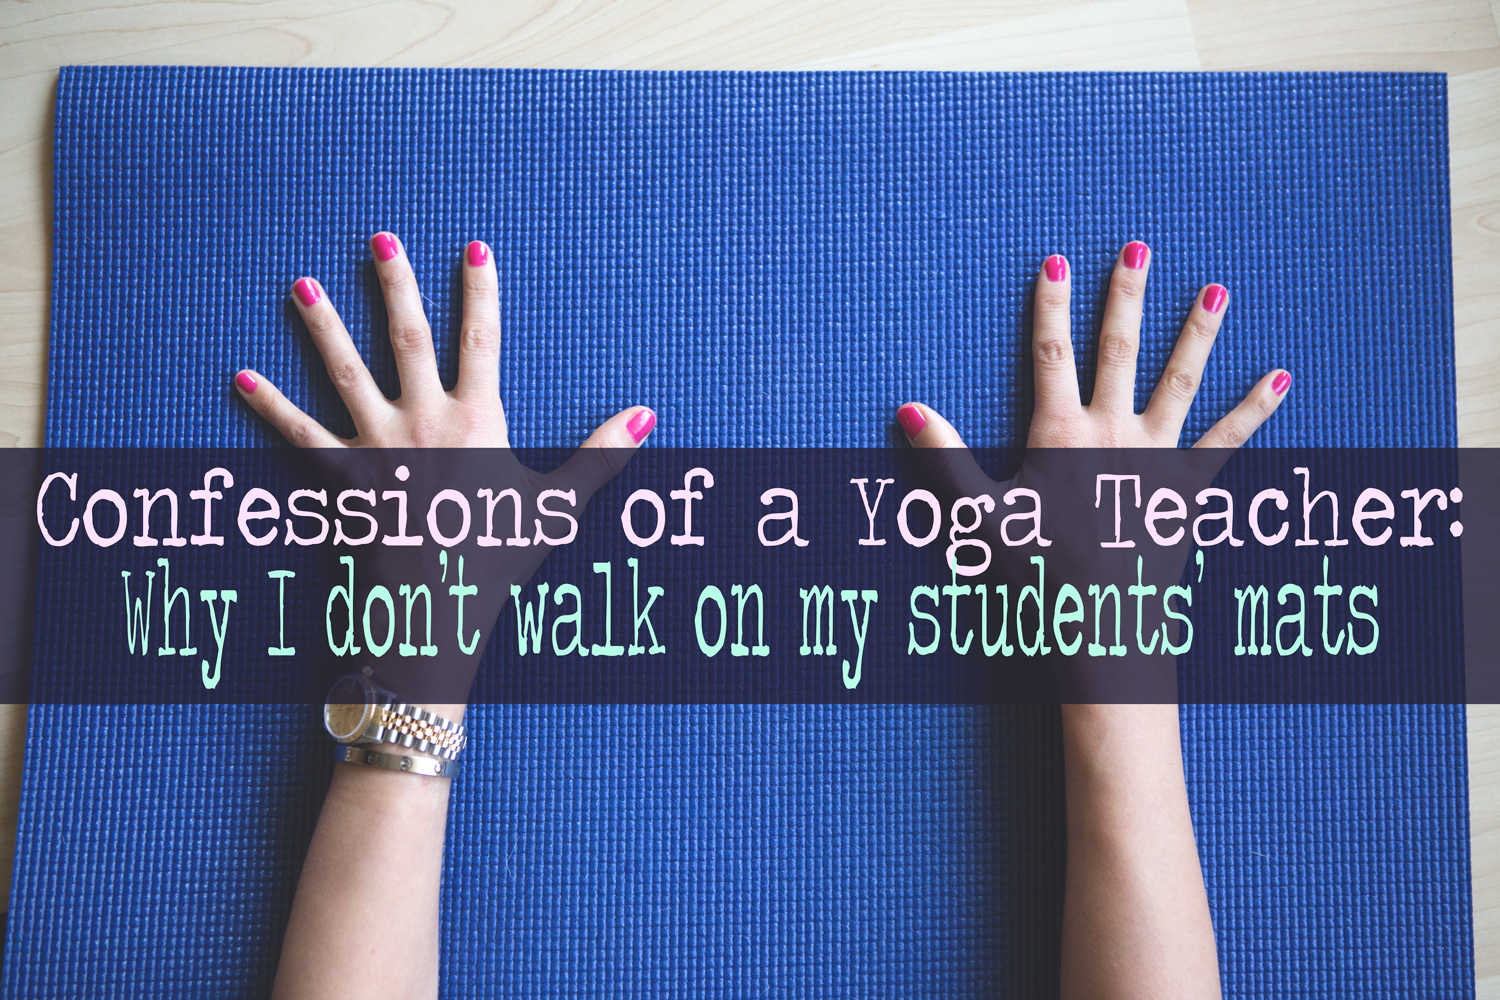 Pin it! Confessions of a yoga teacher: Why I don't walk on my students' mats  Wearing:  Butter London Primrose Hill Picnic nail polish , Using  Yoga Accessories mat .